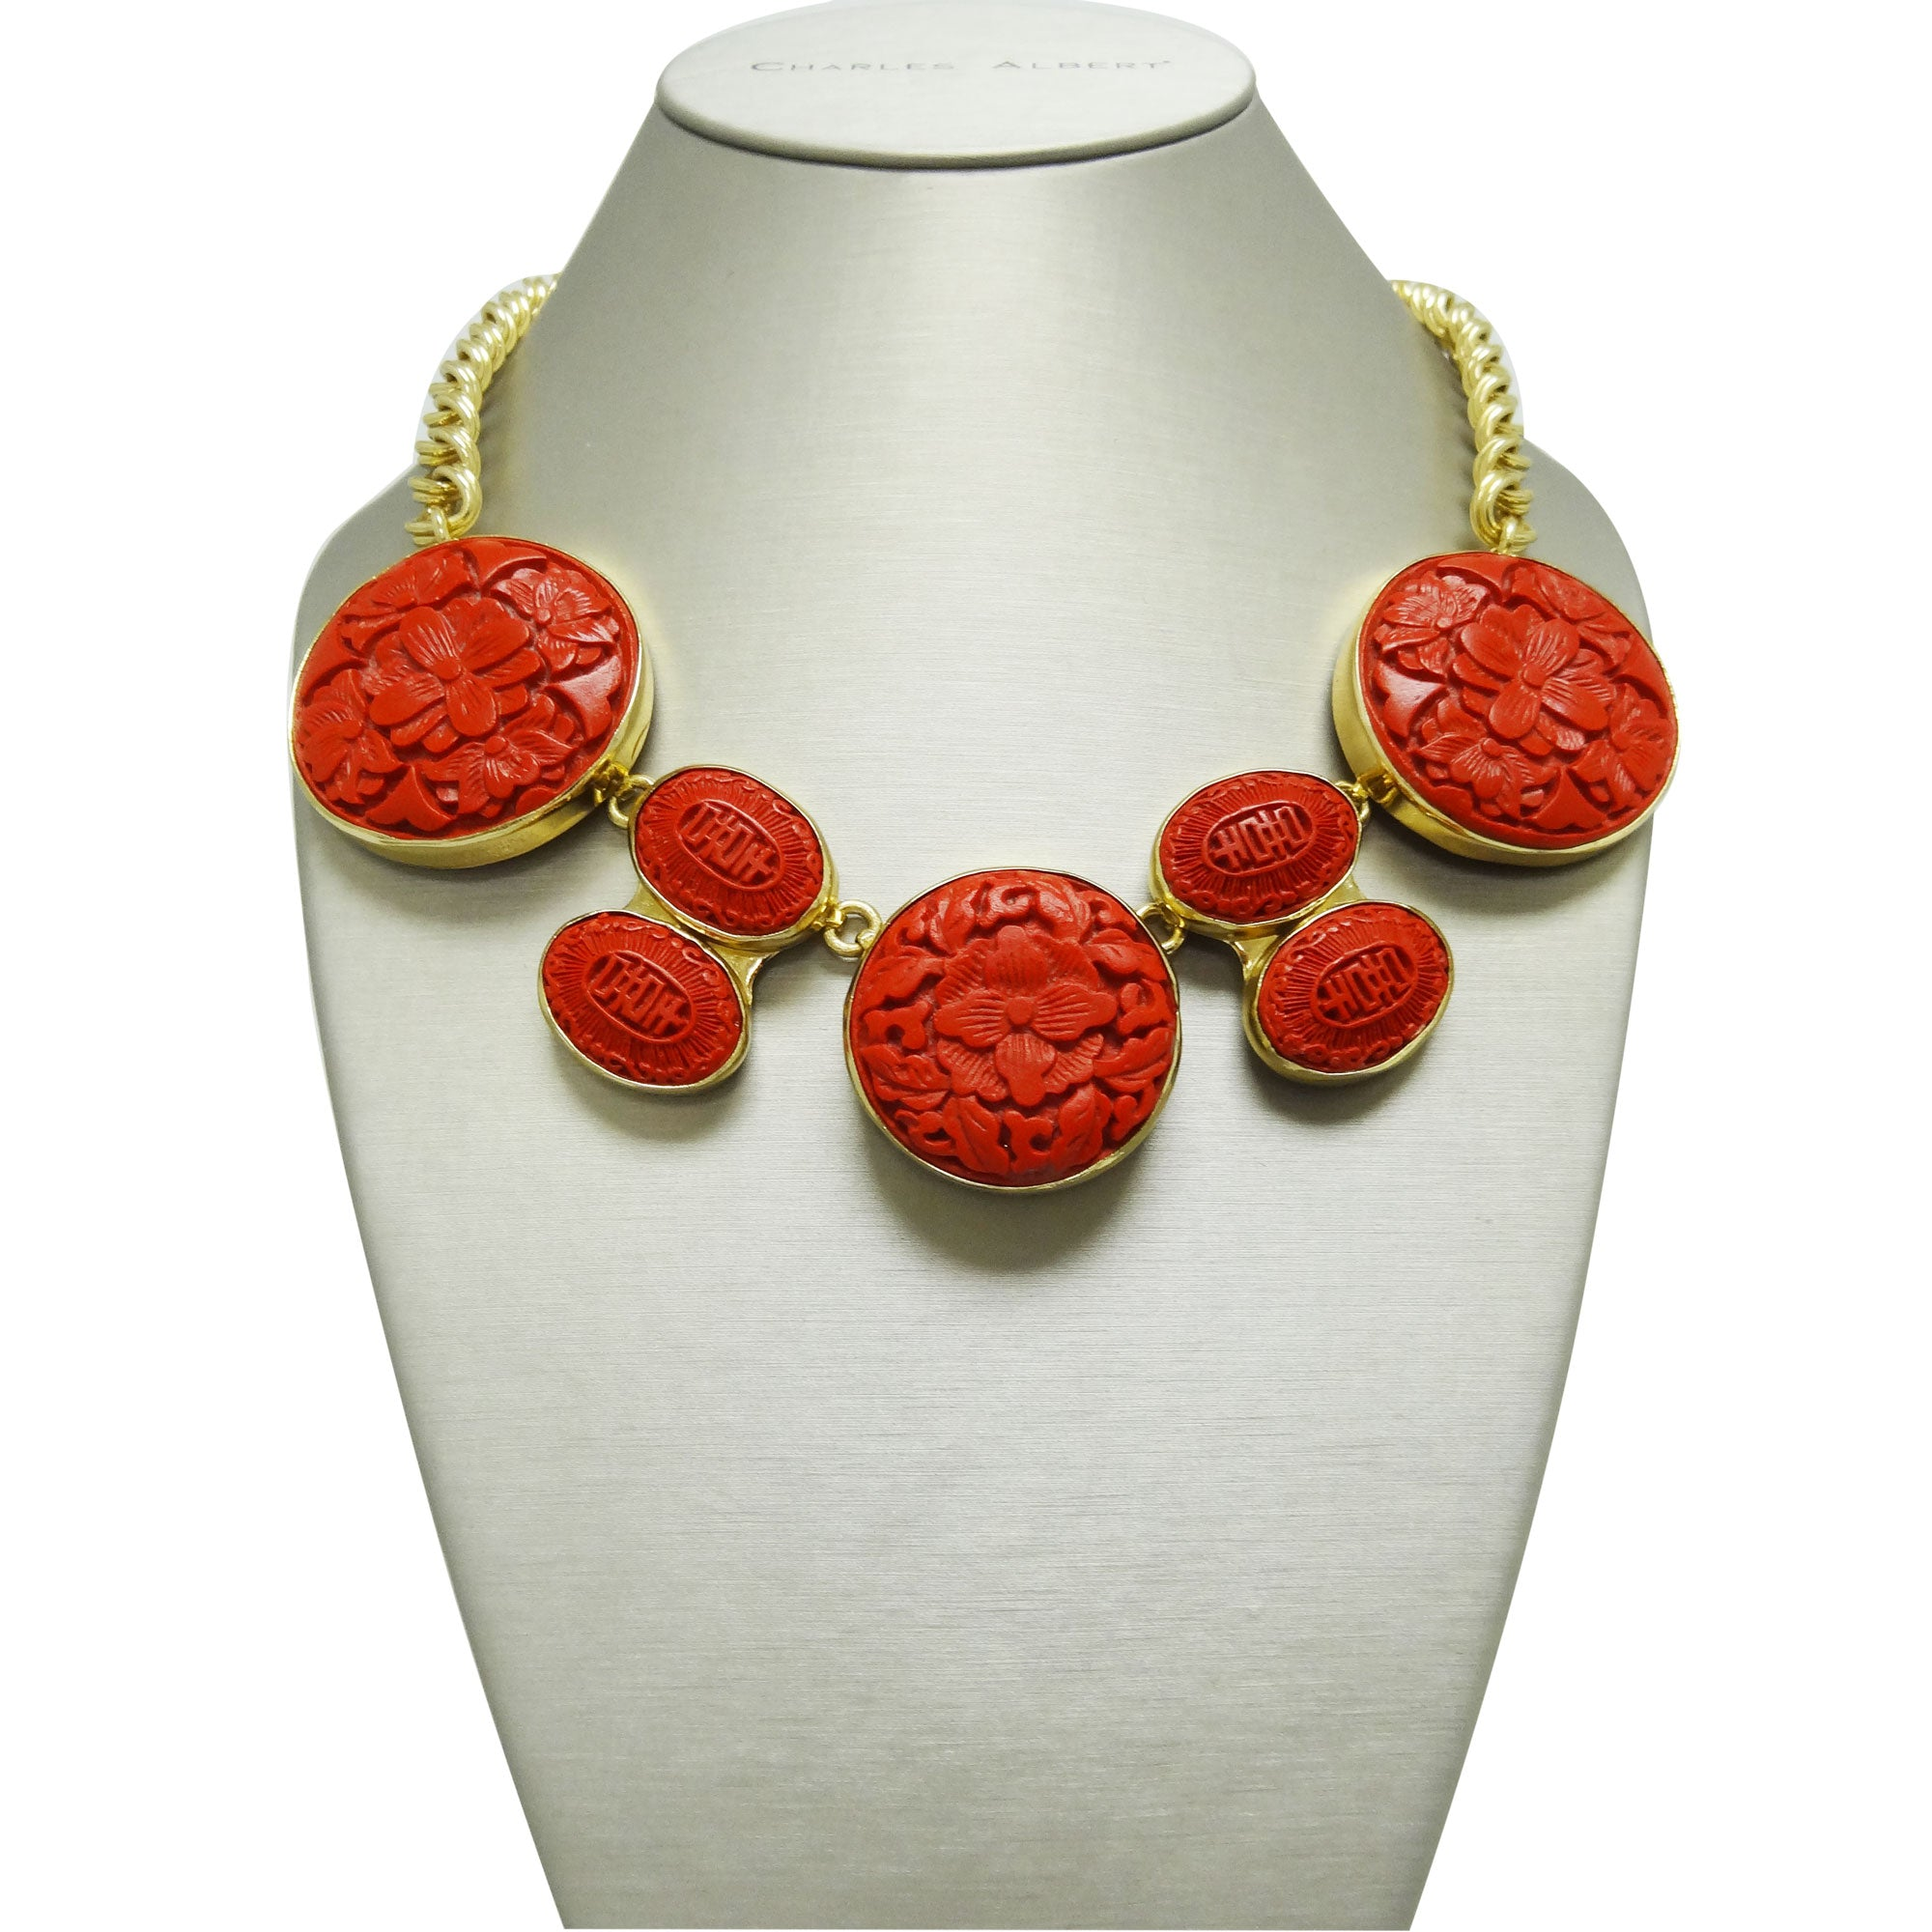 Alchemia Red Cinnabar Necklace | Charles Albert Jewelry